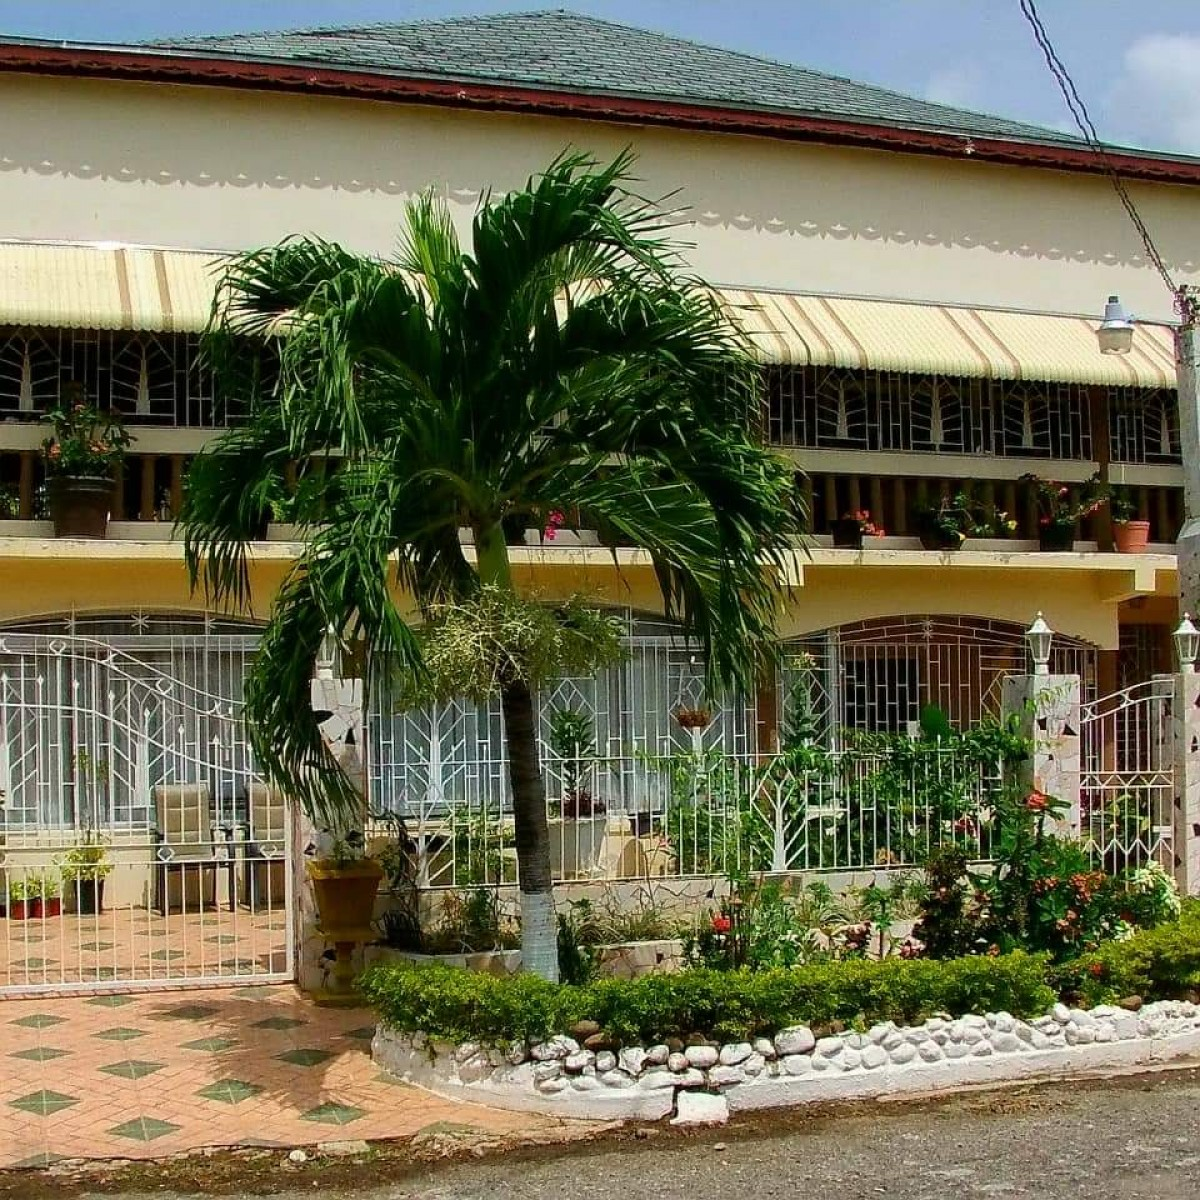 For Rent Homes: 3 Bedroom House For Rent In Ensom City, Spanish Town St